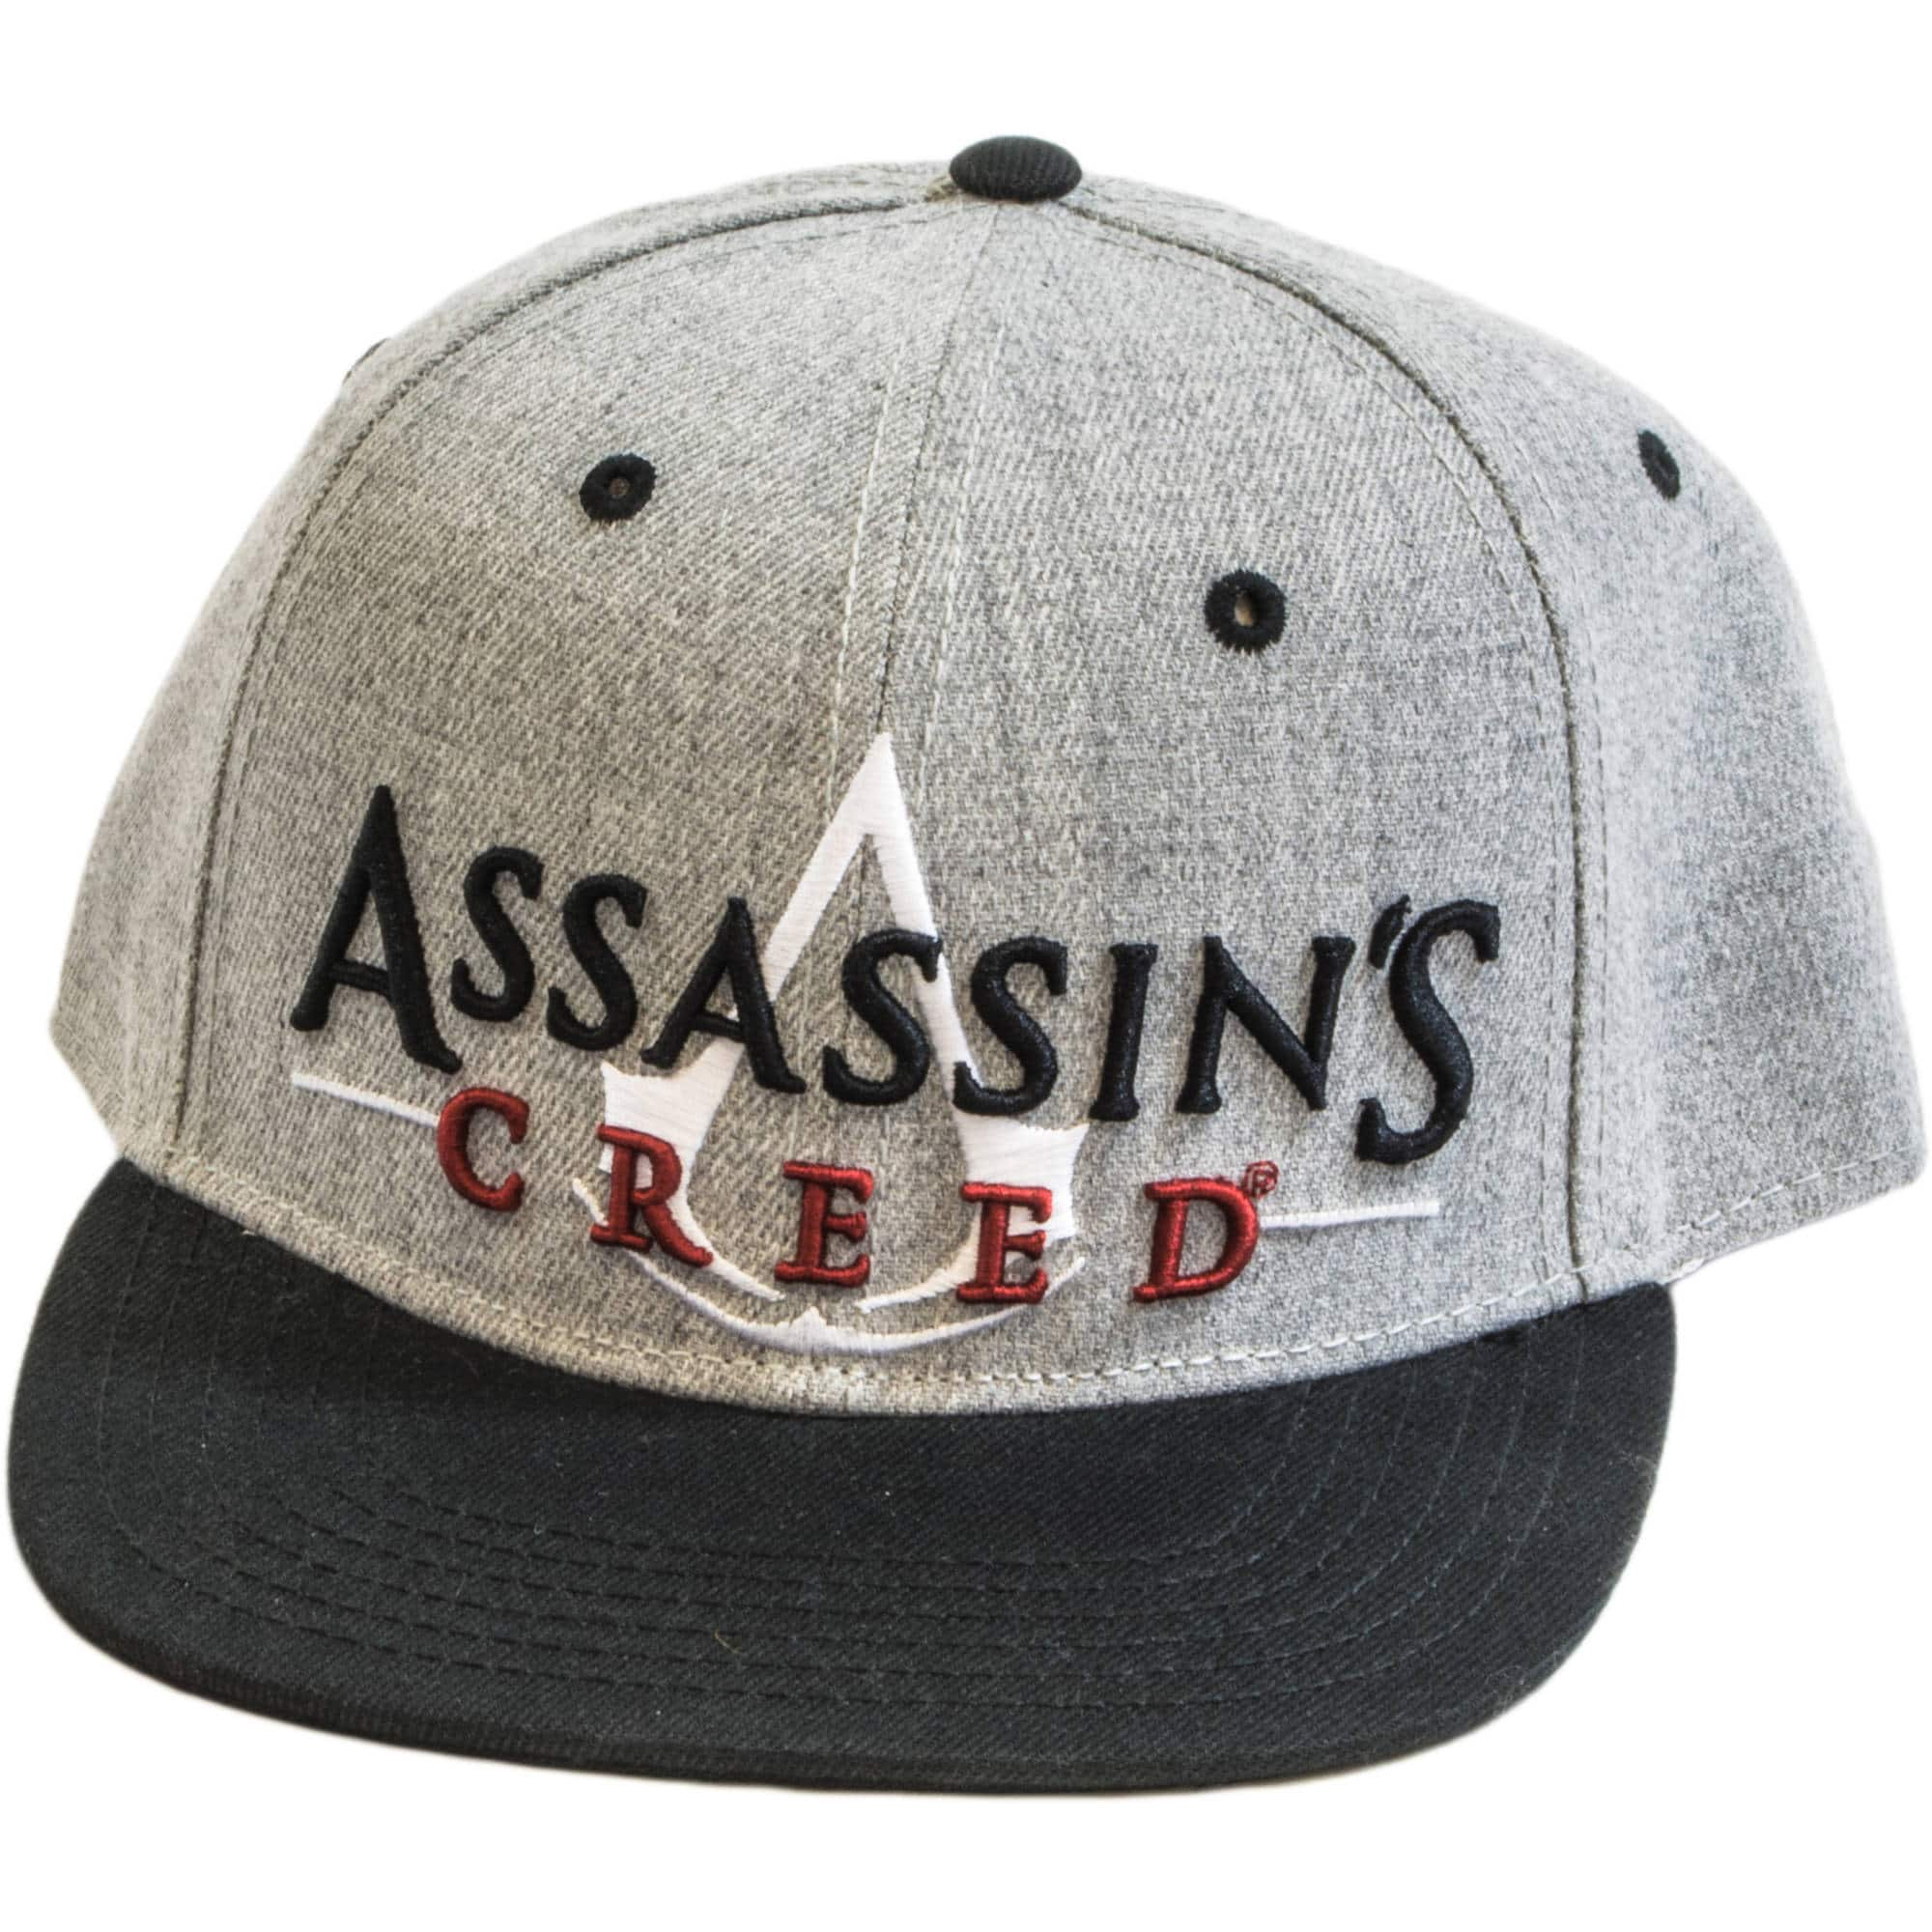 78c8e0ef5 Mens Assassins Creed Flat Brimmed Hat / Baseball Style Cap $2.00 ...